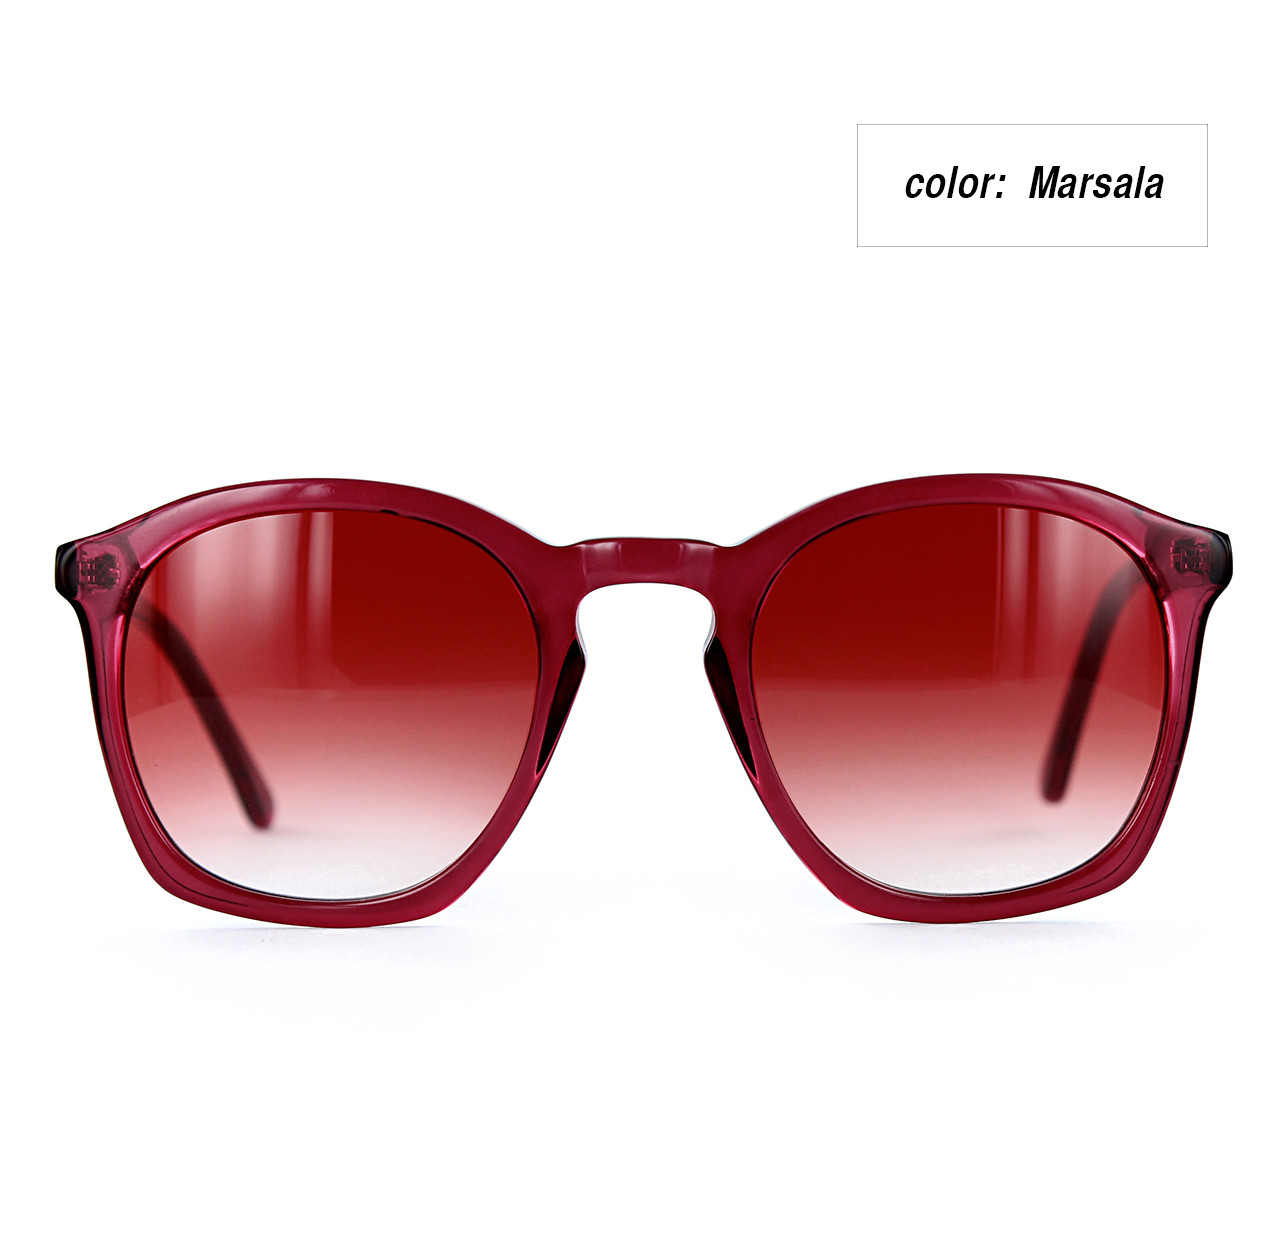 Rouq 4.0 Marsala with Gradient Marsala Lenses